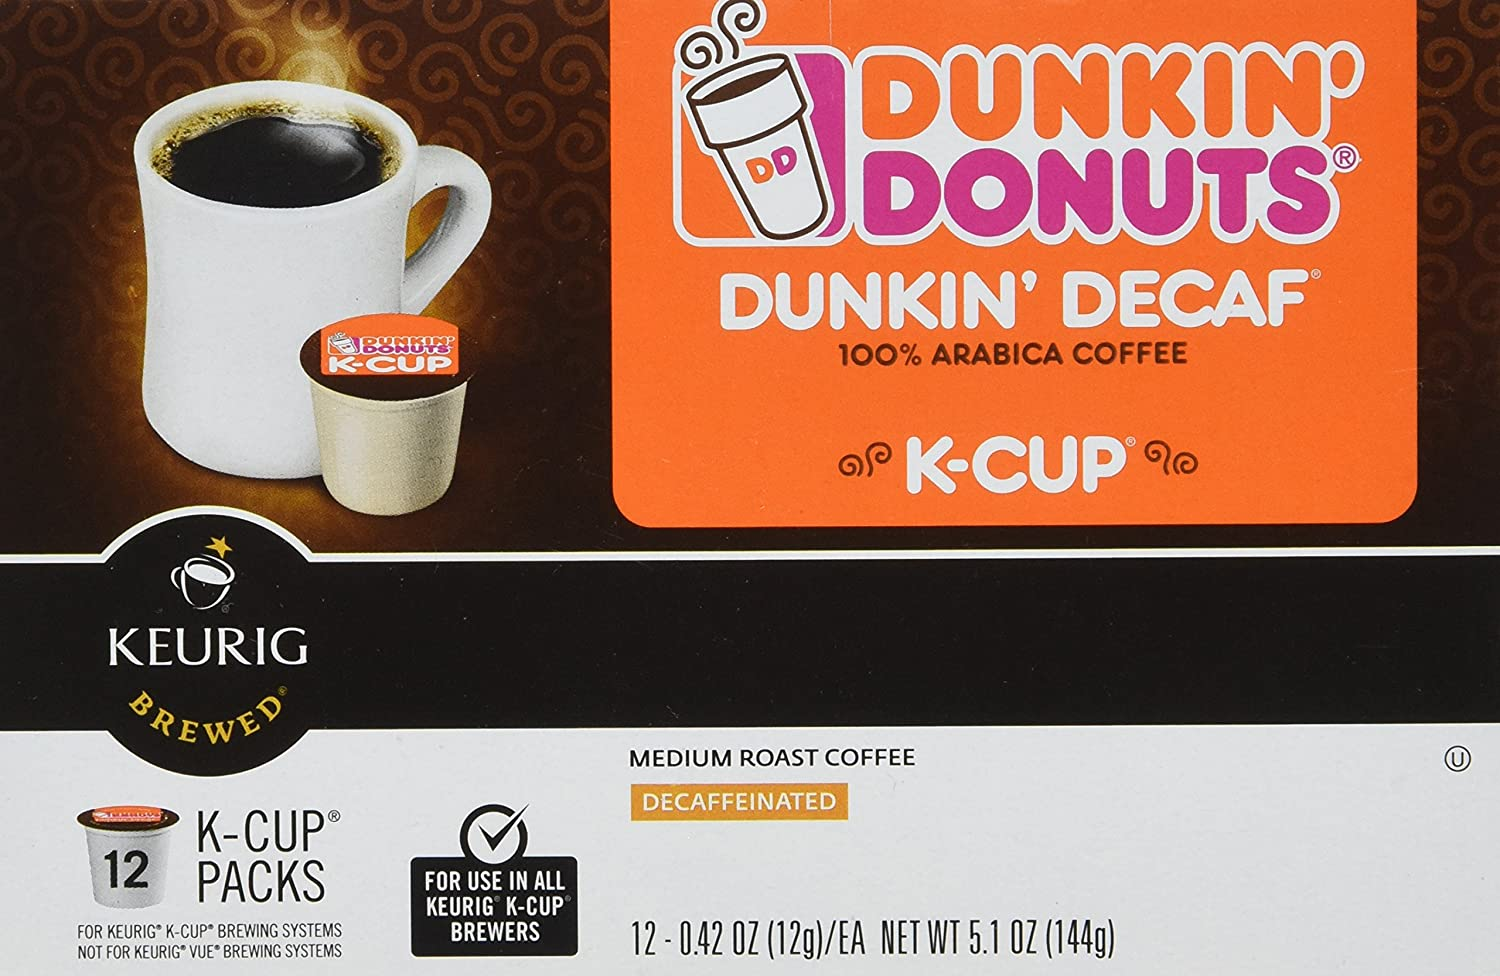 72c53484f84 Amazon.com : Dunkin Donuts K-cups Decaf - Box of 12 Kcups for Use in Keurig  Coffee Brewers 5.1oz : Grocery & Gourmet Food